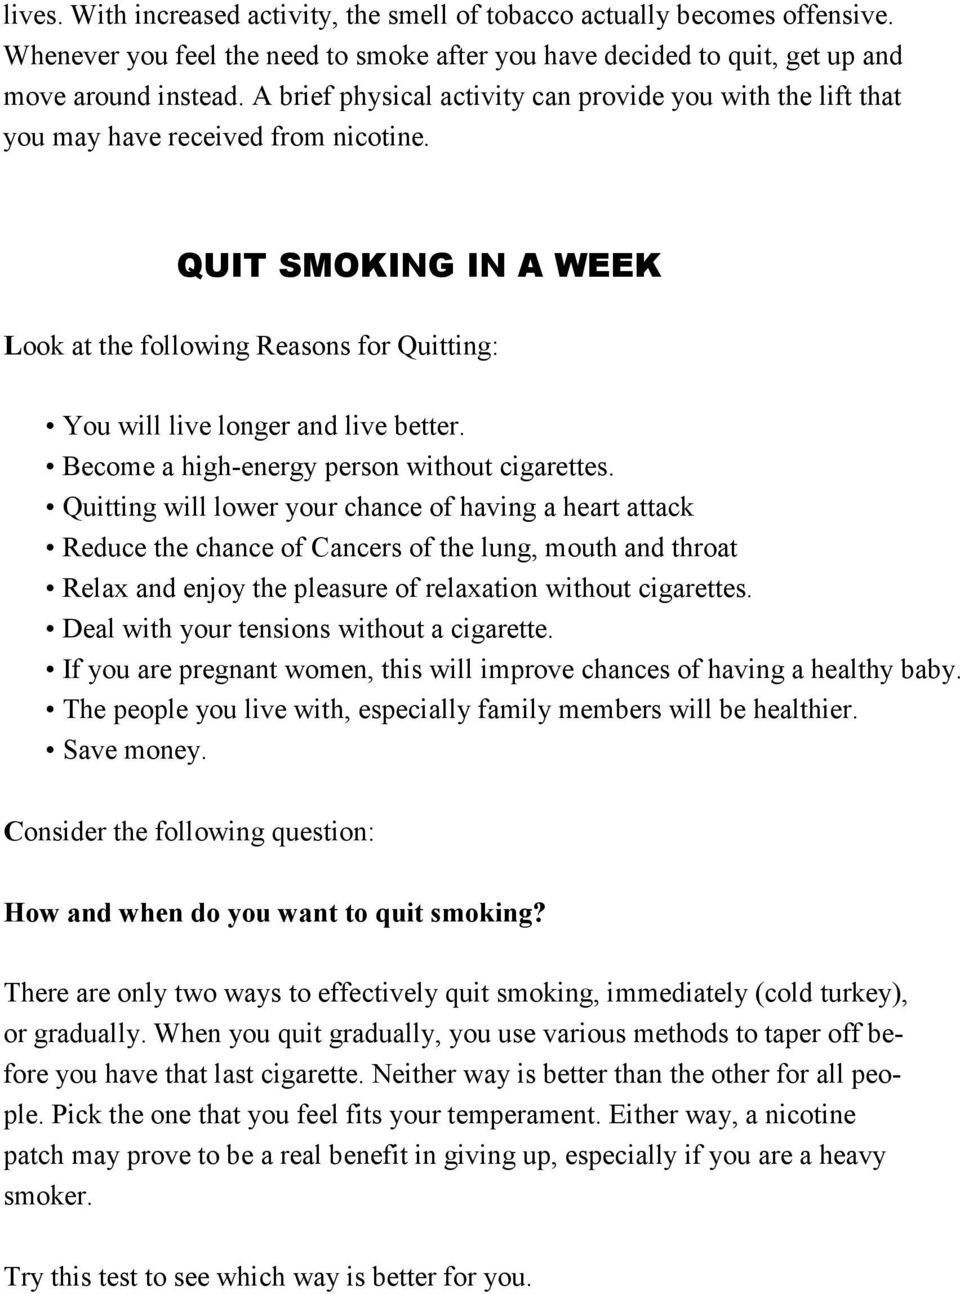 QUIT SMOKING IN A WEEK Look at the following Reasons for Quitting: You will live longer and live better. Become a high-energy person without cigarettes.